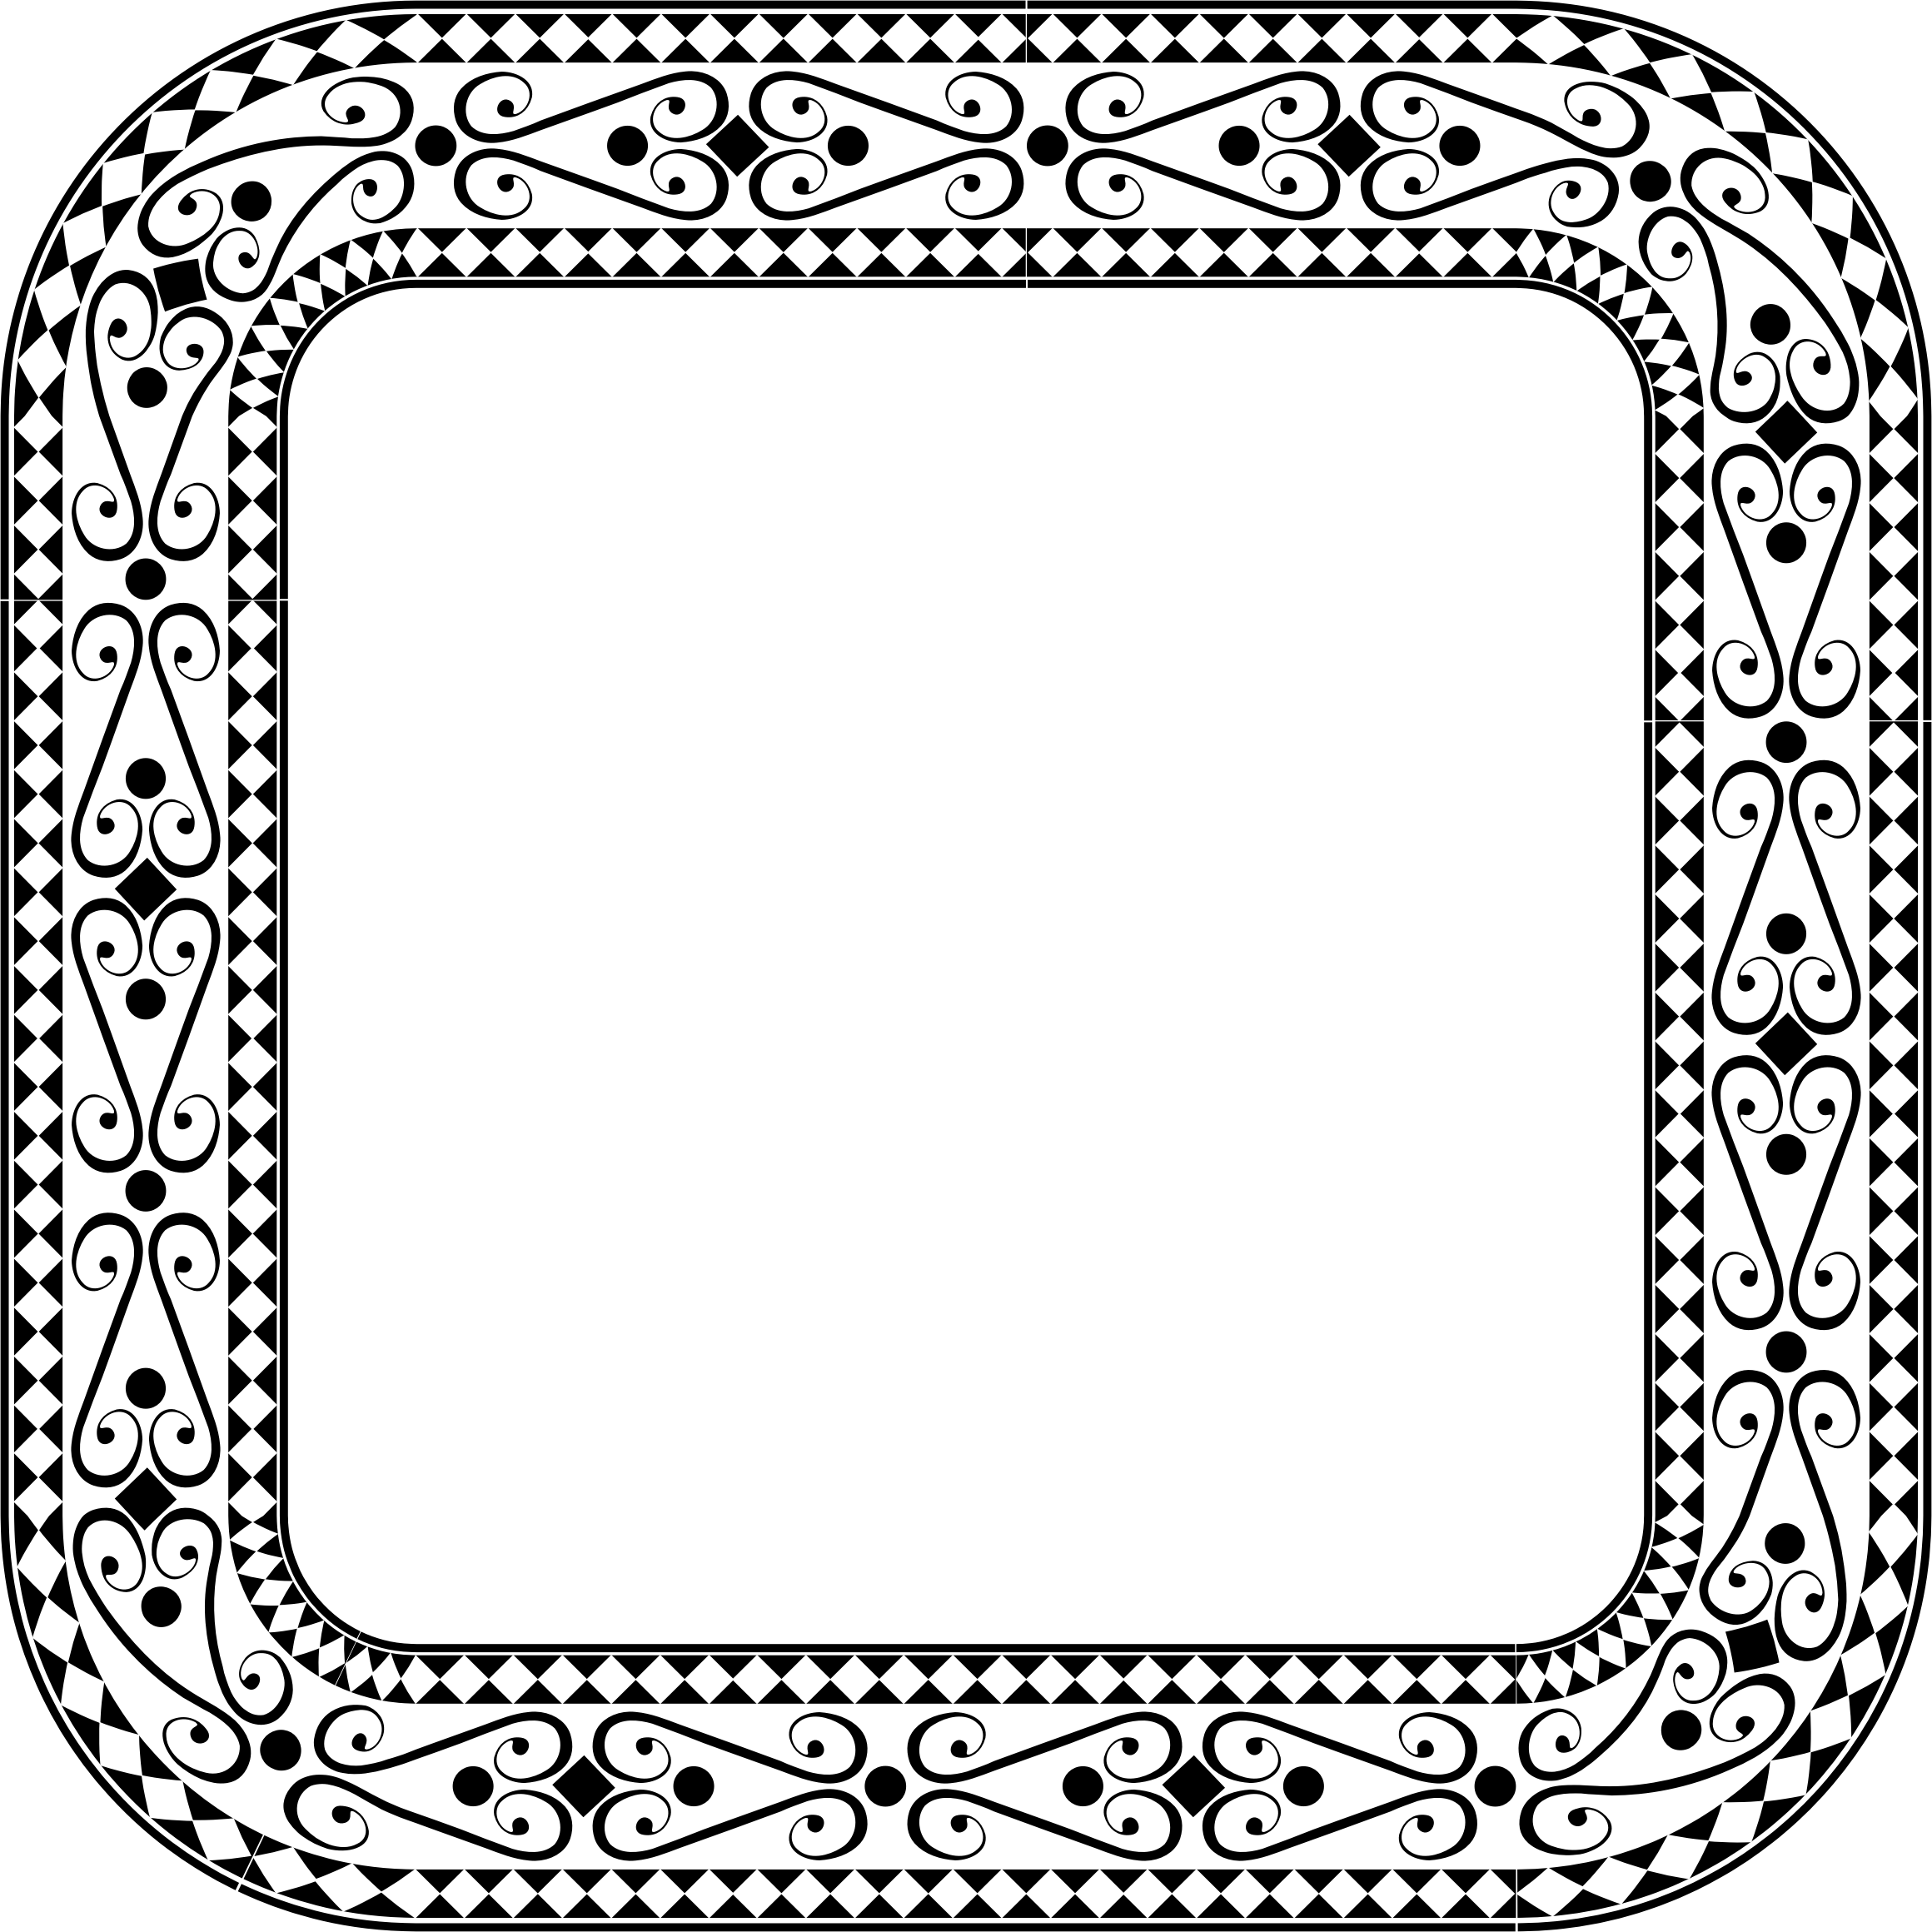 Square clipart square frame. Decorative ornamental big image